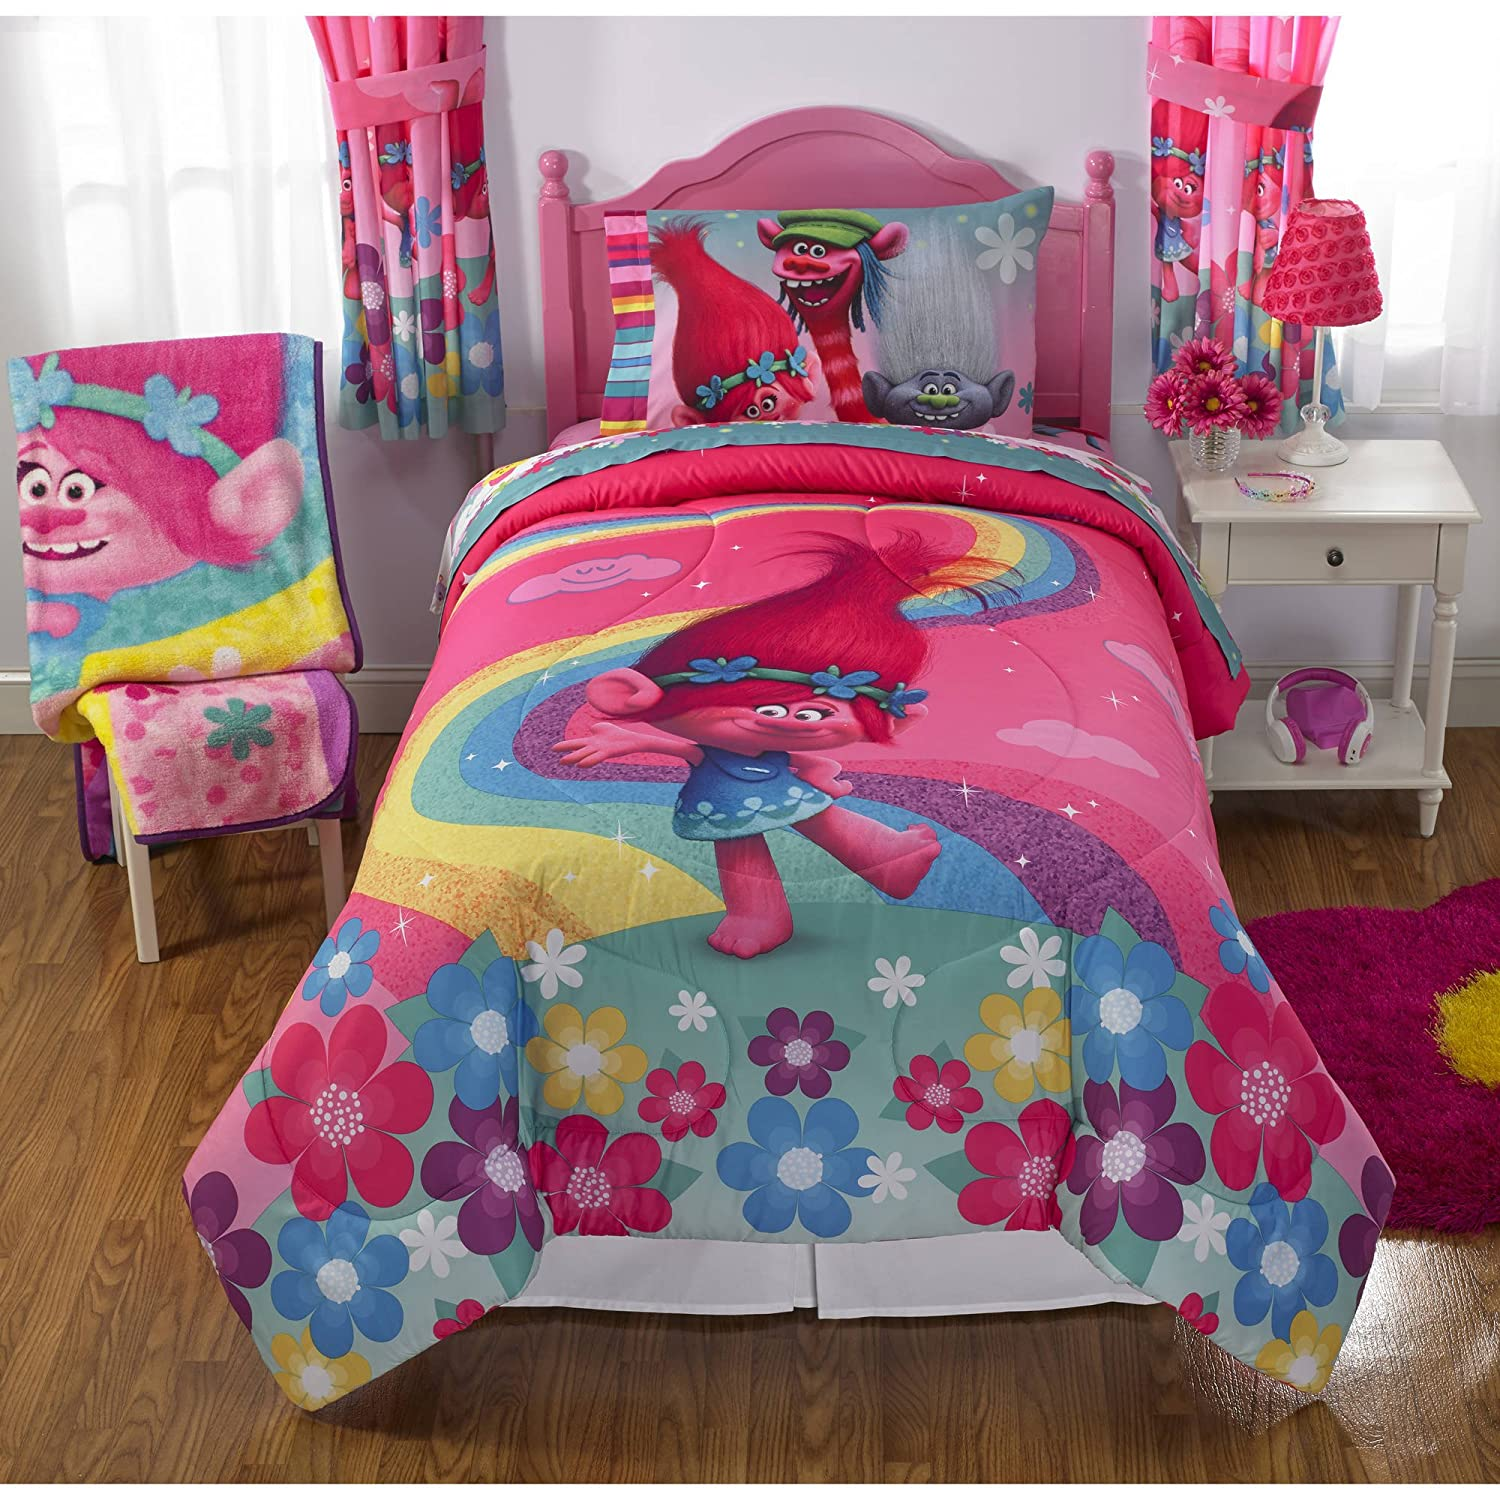 1 Piece Girls Pink Trolls Comforter Twin Full, Kids Princess Poppy Dancing Bedding Show Me A Smile Blue Yellow Rainbow Flower Cute Branch Guy Diamond Copper Dreamworks Fantasy Adventure Animated Film